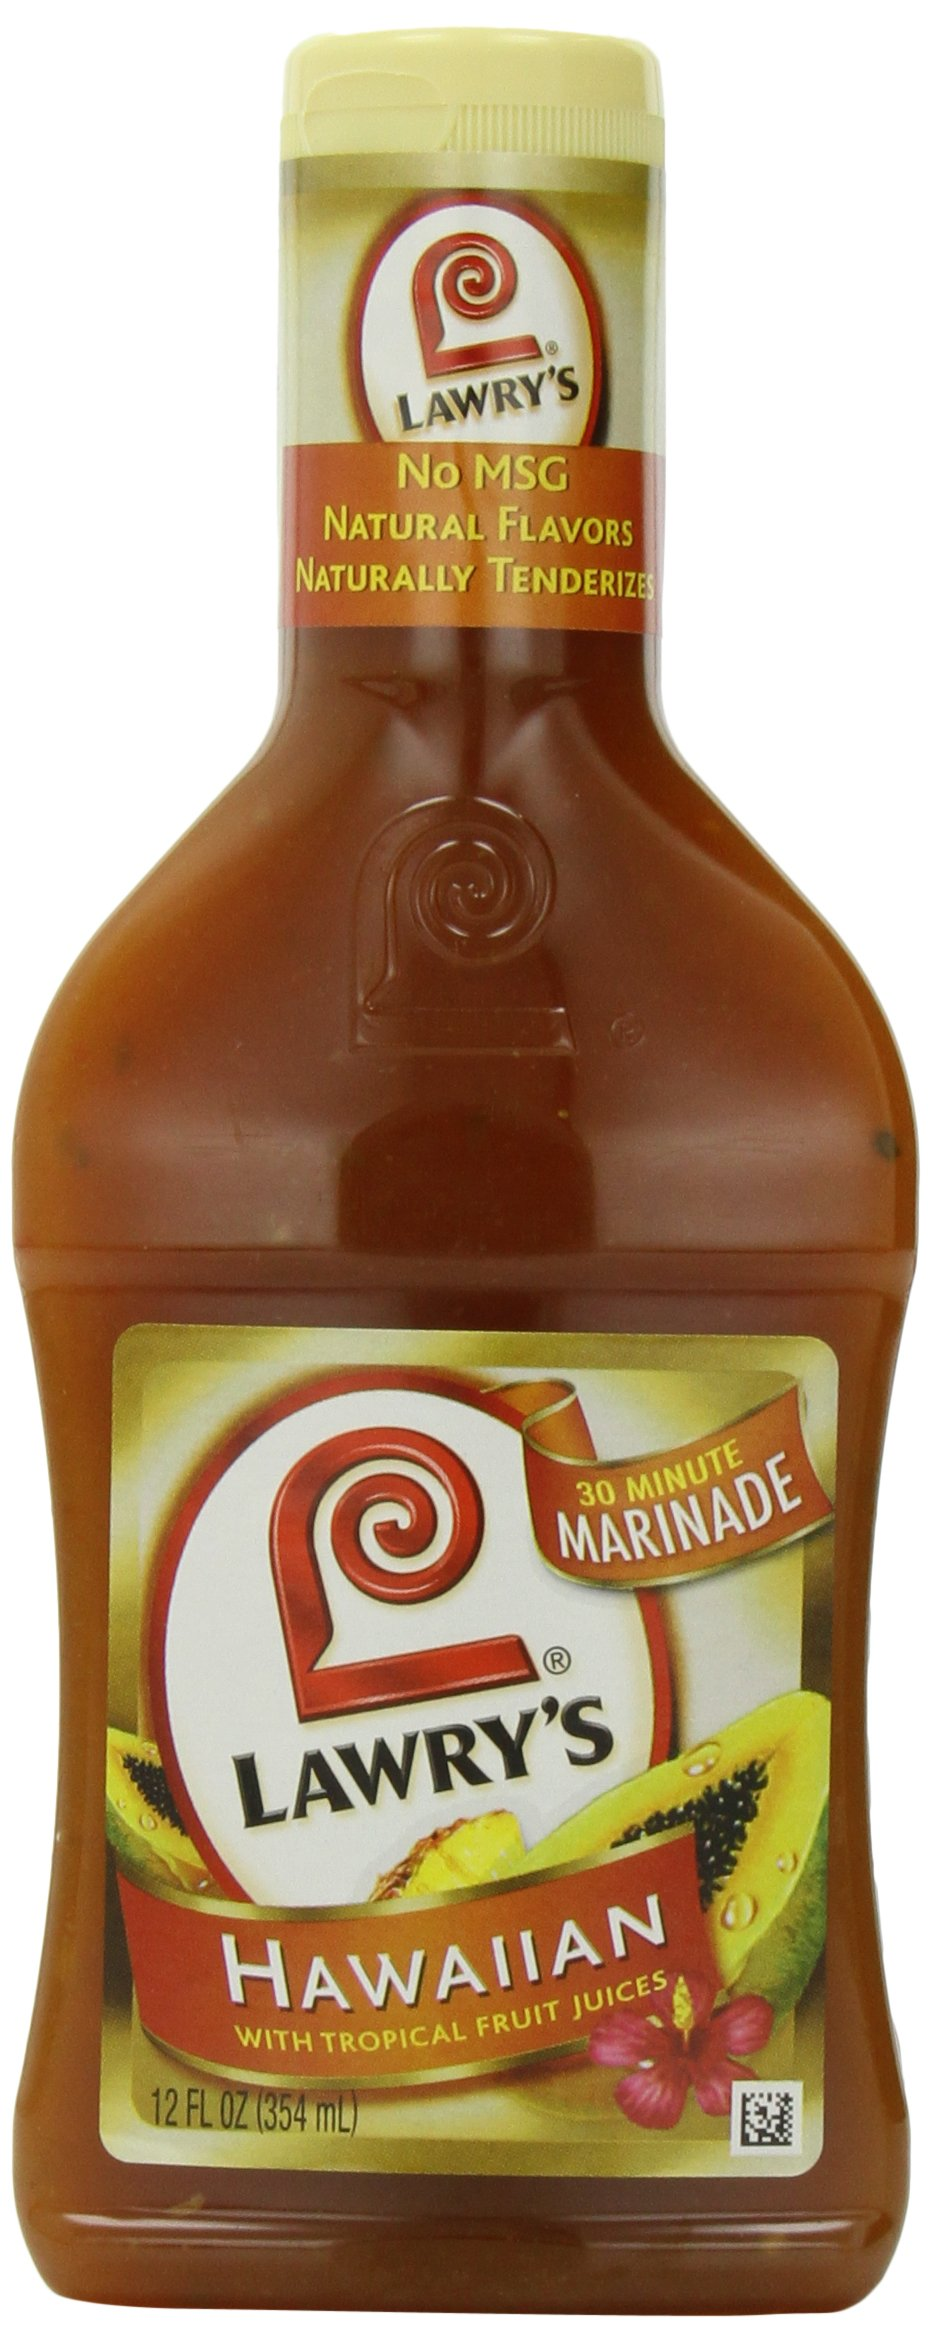 Lawry's 30-Minute Marinade, Hawaiian with Tropical Fruit Juices, 12-Ounce Bottles (Pack of 6)